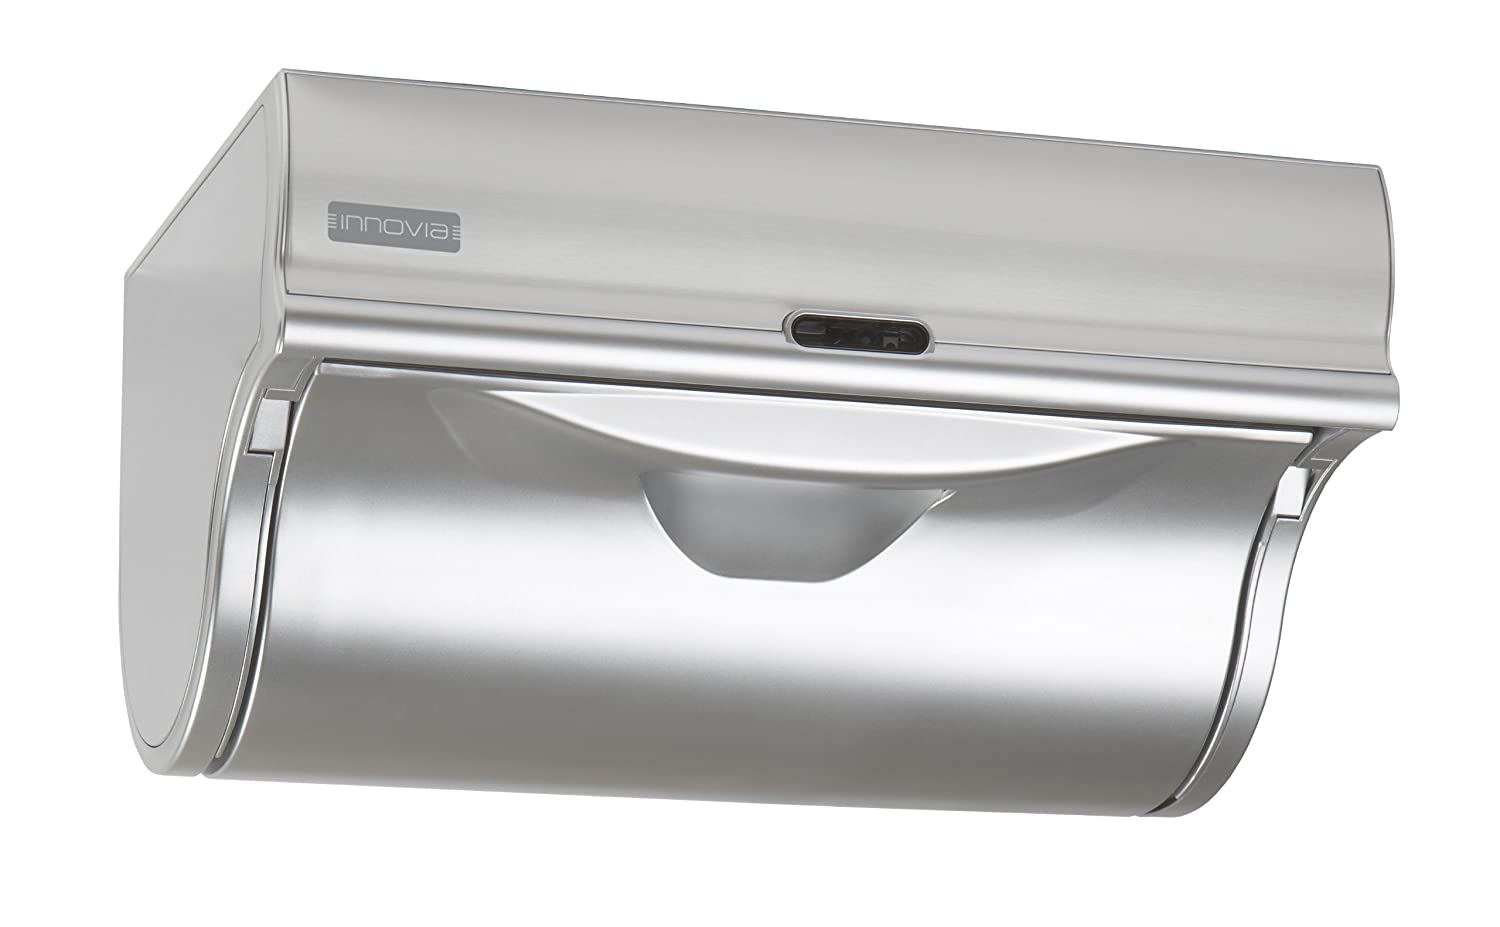 Innovia WB2-159S Automatic Paper Towel Dispenser, Silver